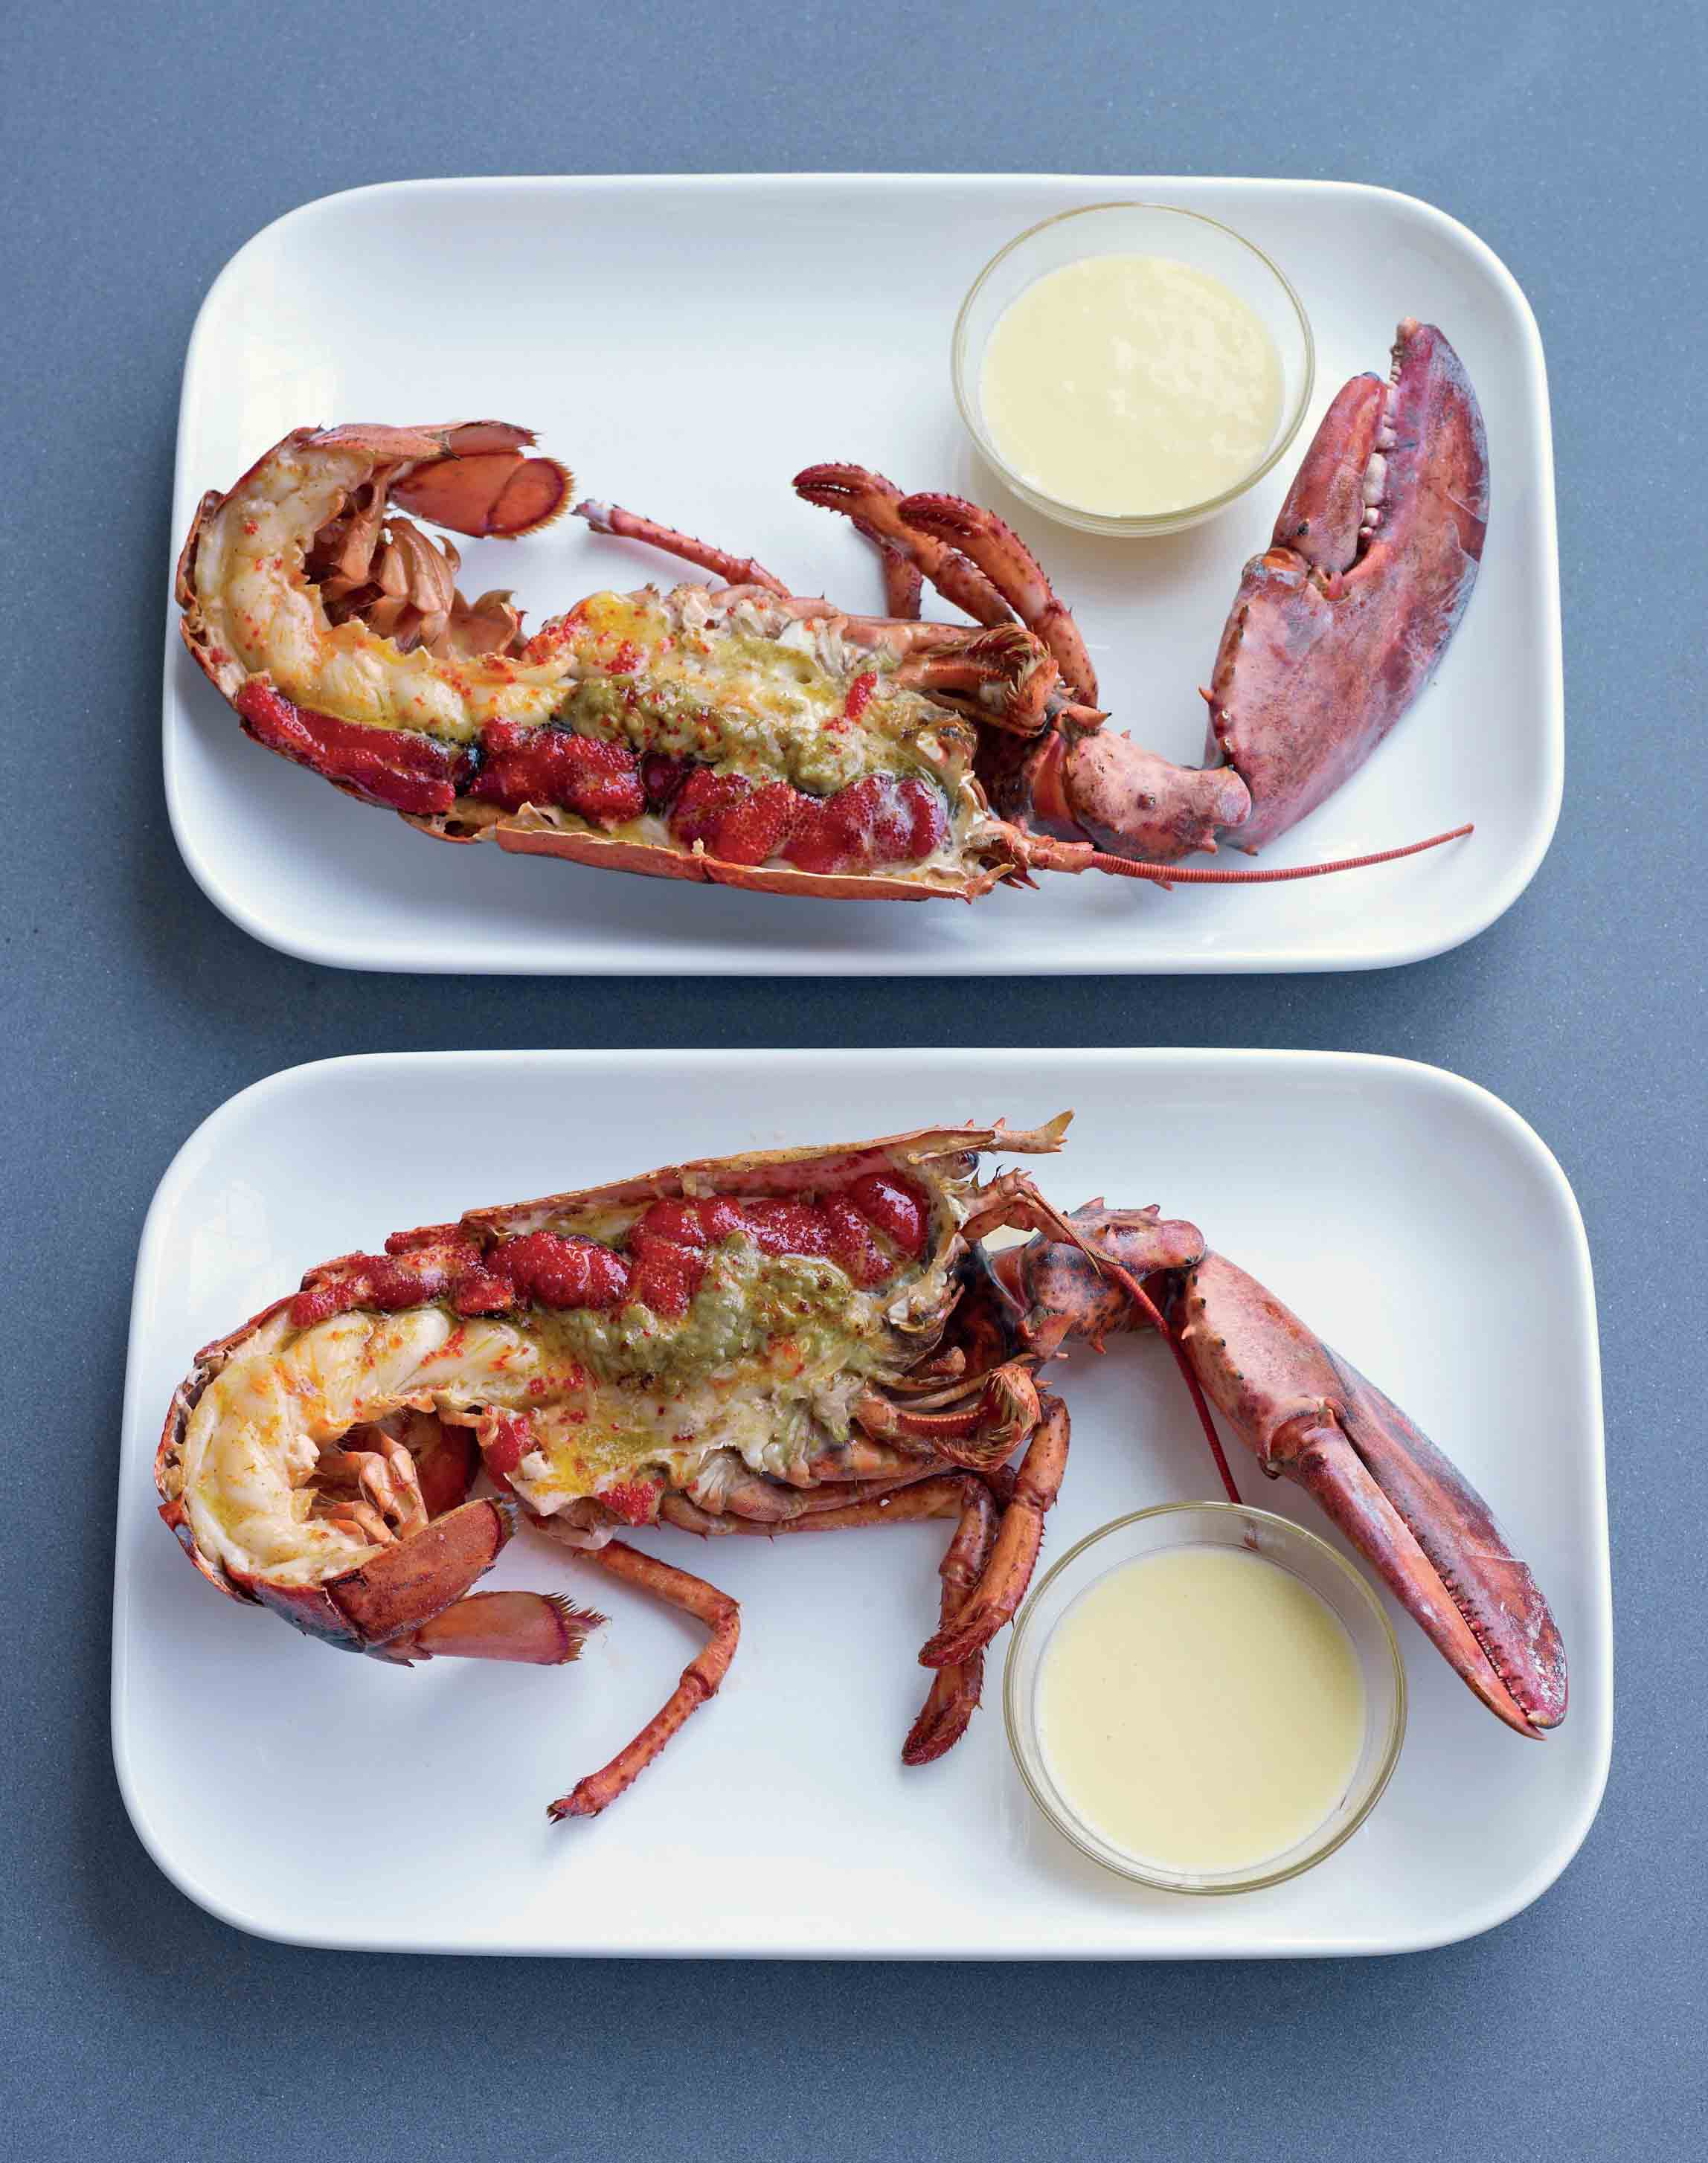 Grilled lobster with a beurre blanc sauce